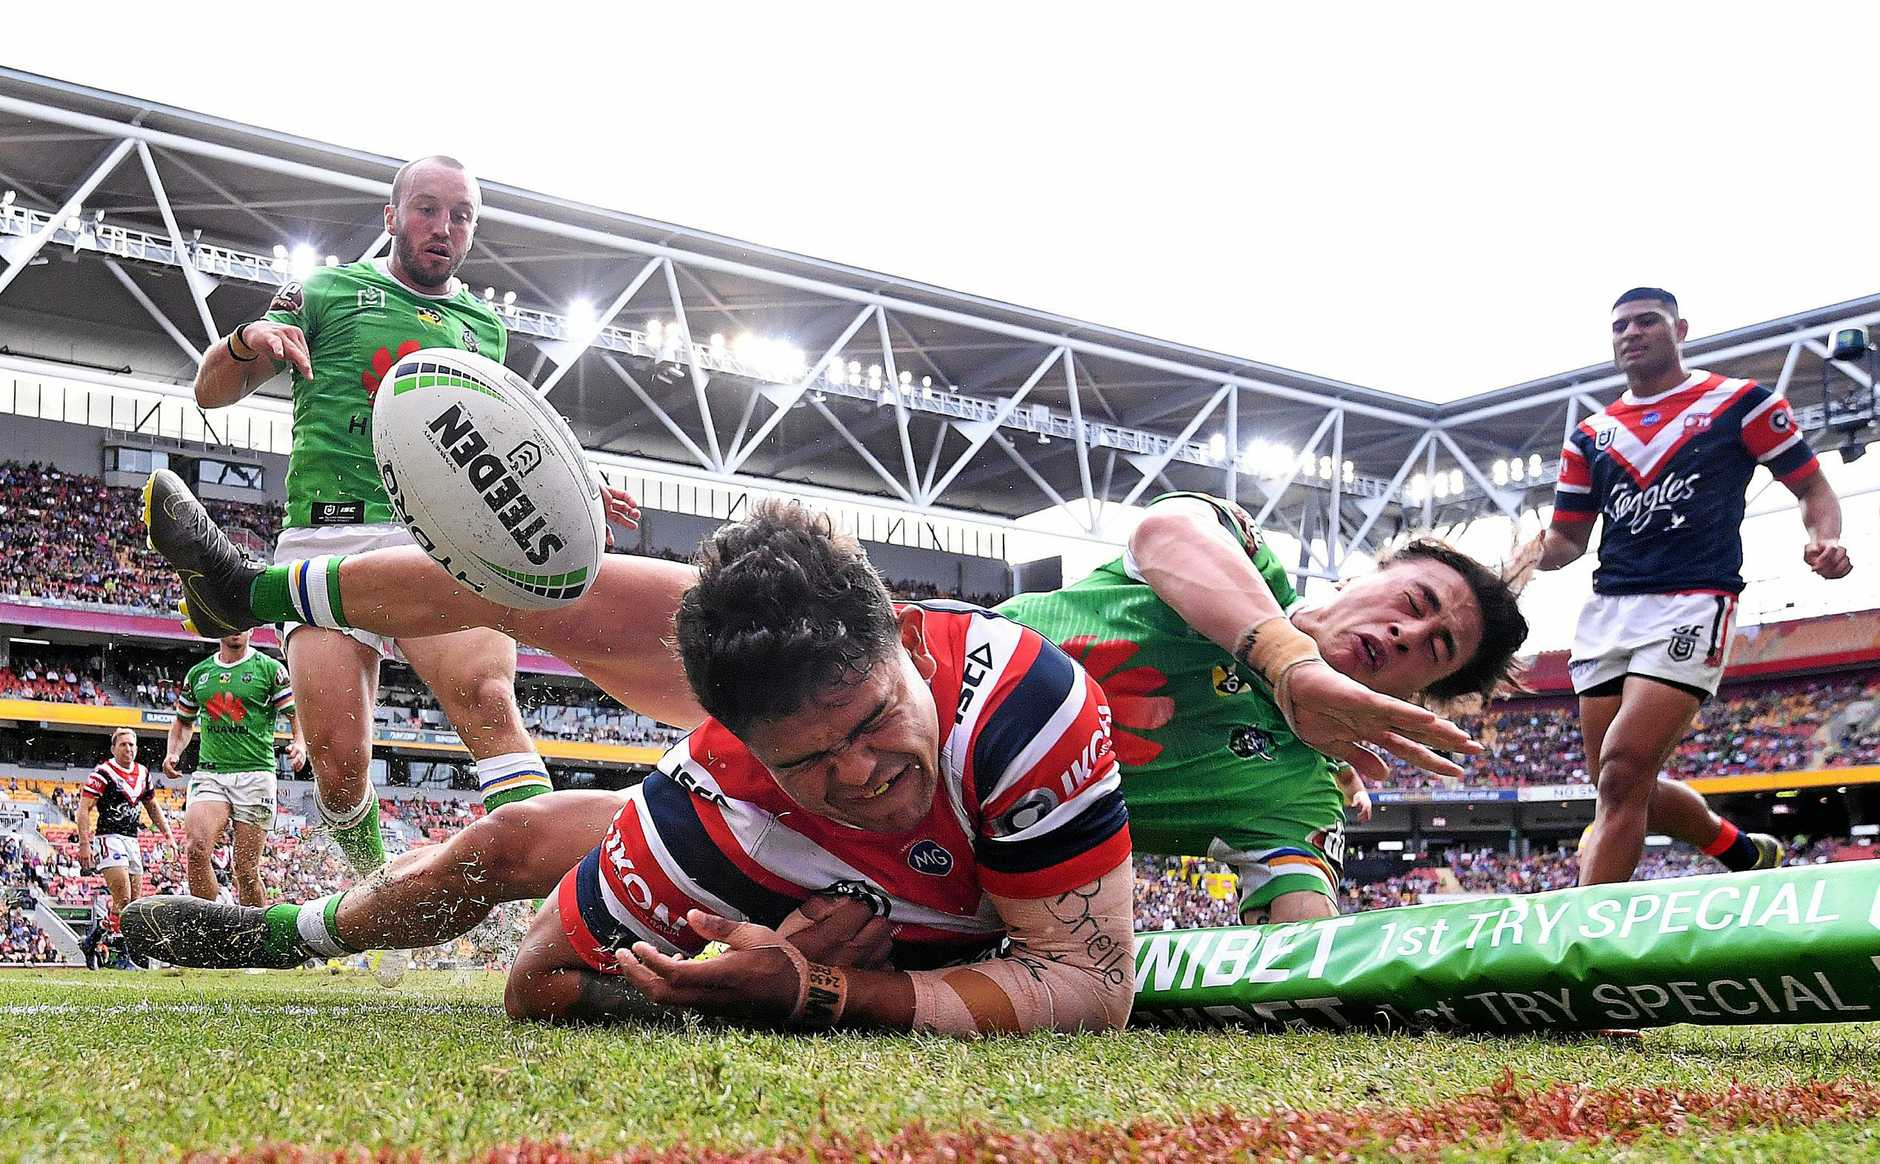 Latrell Mitchell of the Roosters scores a try during the Round 9 NRL match between the Sydney Roosters and the Canberra Raiders at Suncorp Stadium in Brisbane, Sunday, May 12, 2019.  (AAP Image/Dave Hunt) NO ARCHIVING, EDITORIAL USE ONLY